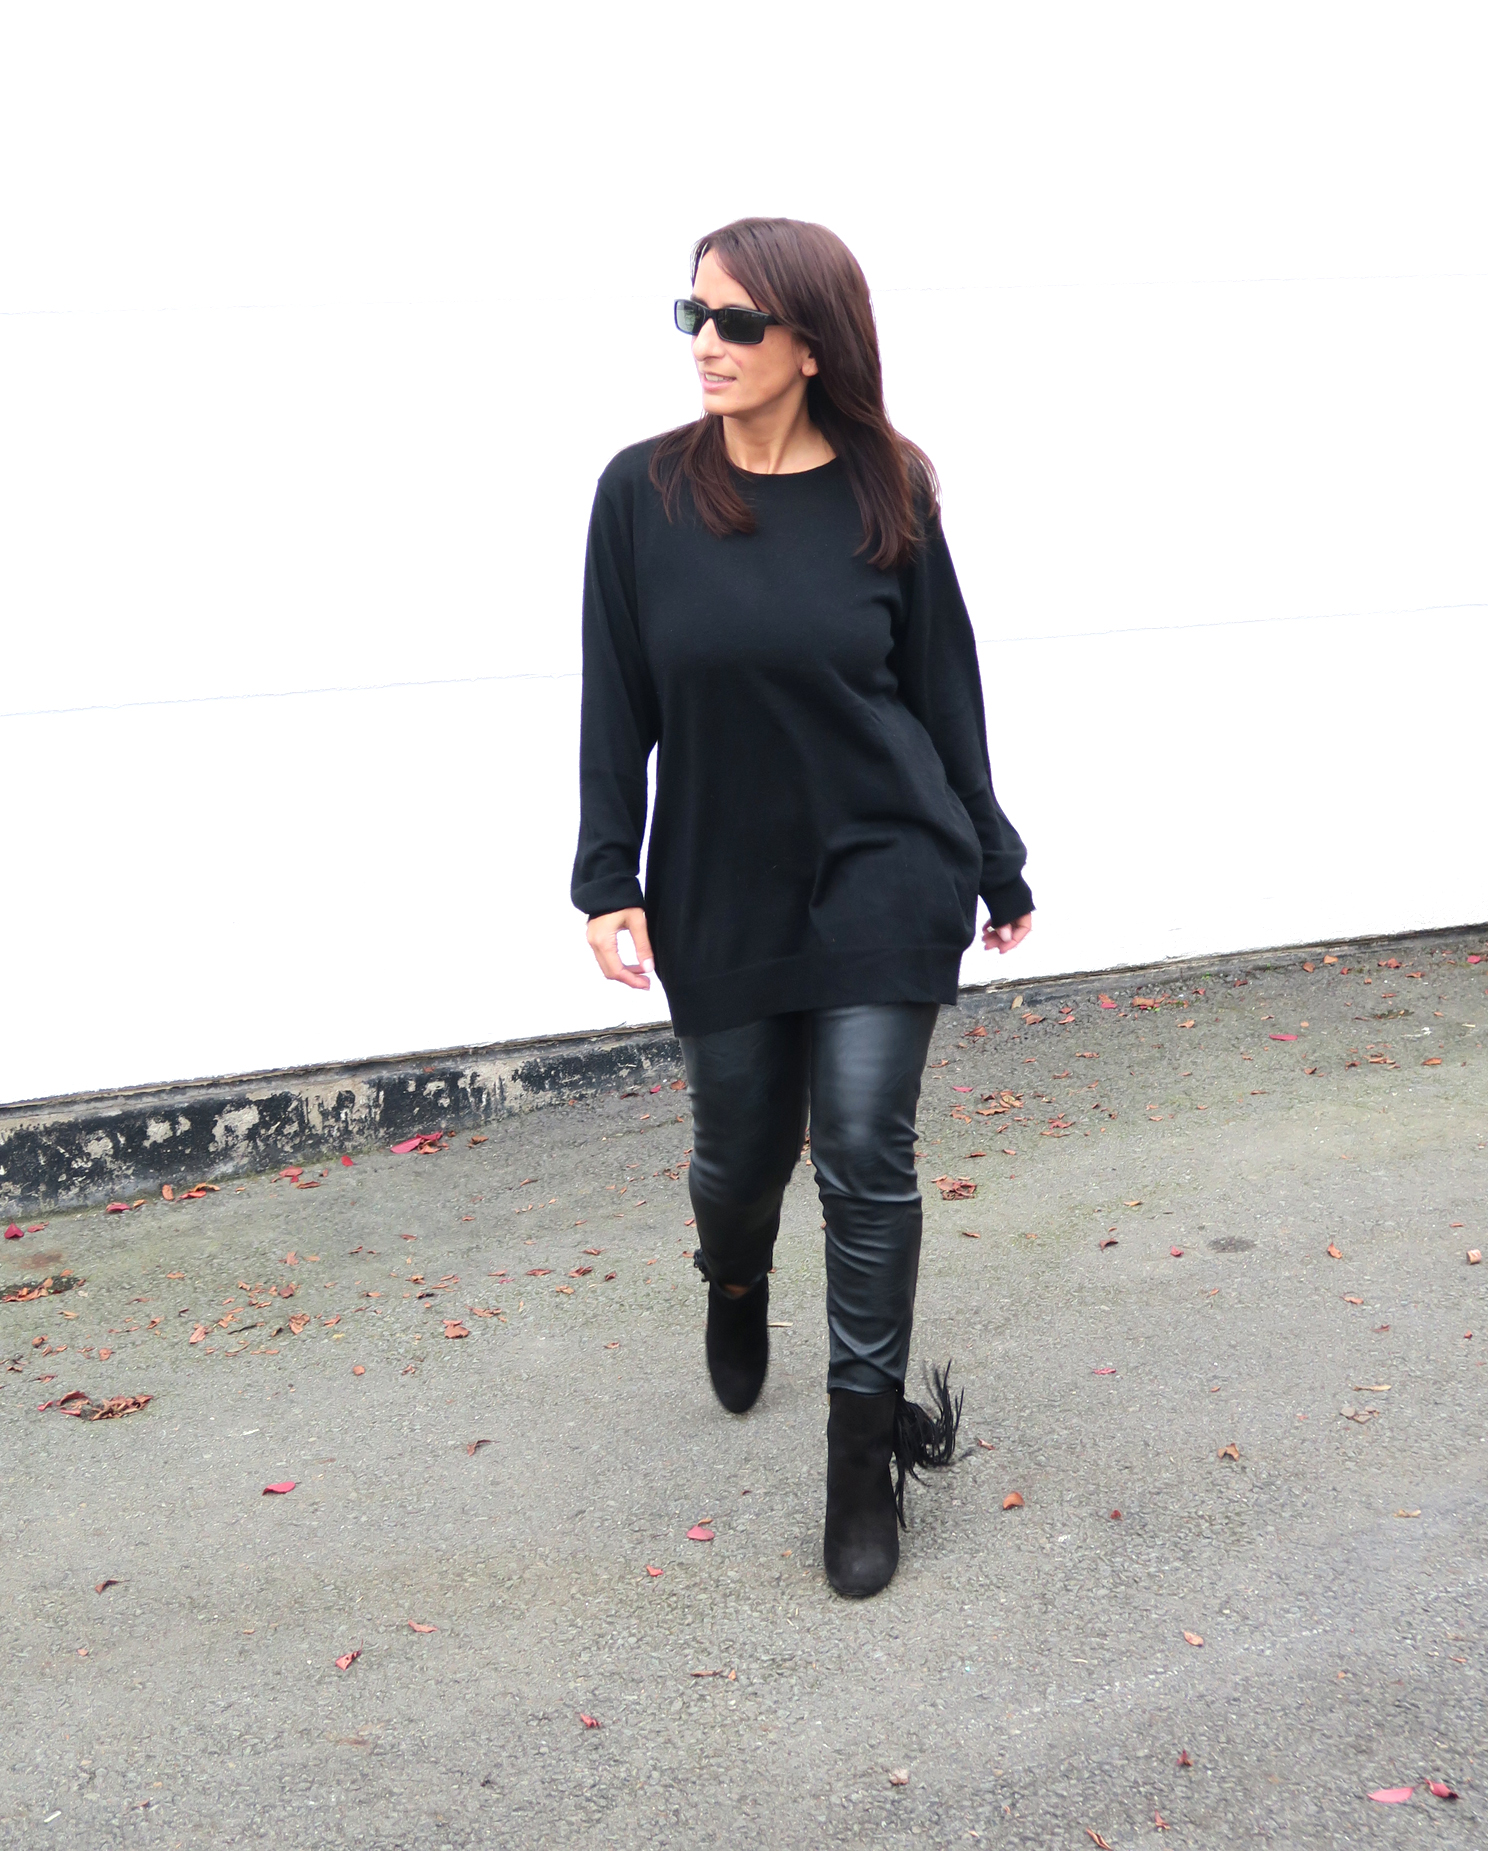 brands4friends-buffalo-boots-fringe-fashionblogger-modeblogger-fashion-style-trend-black-outfit-3